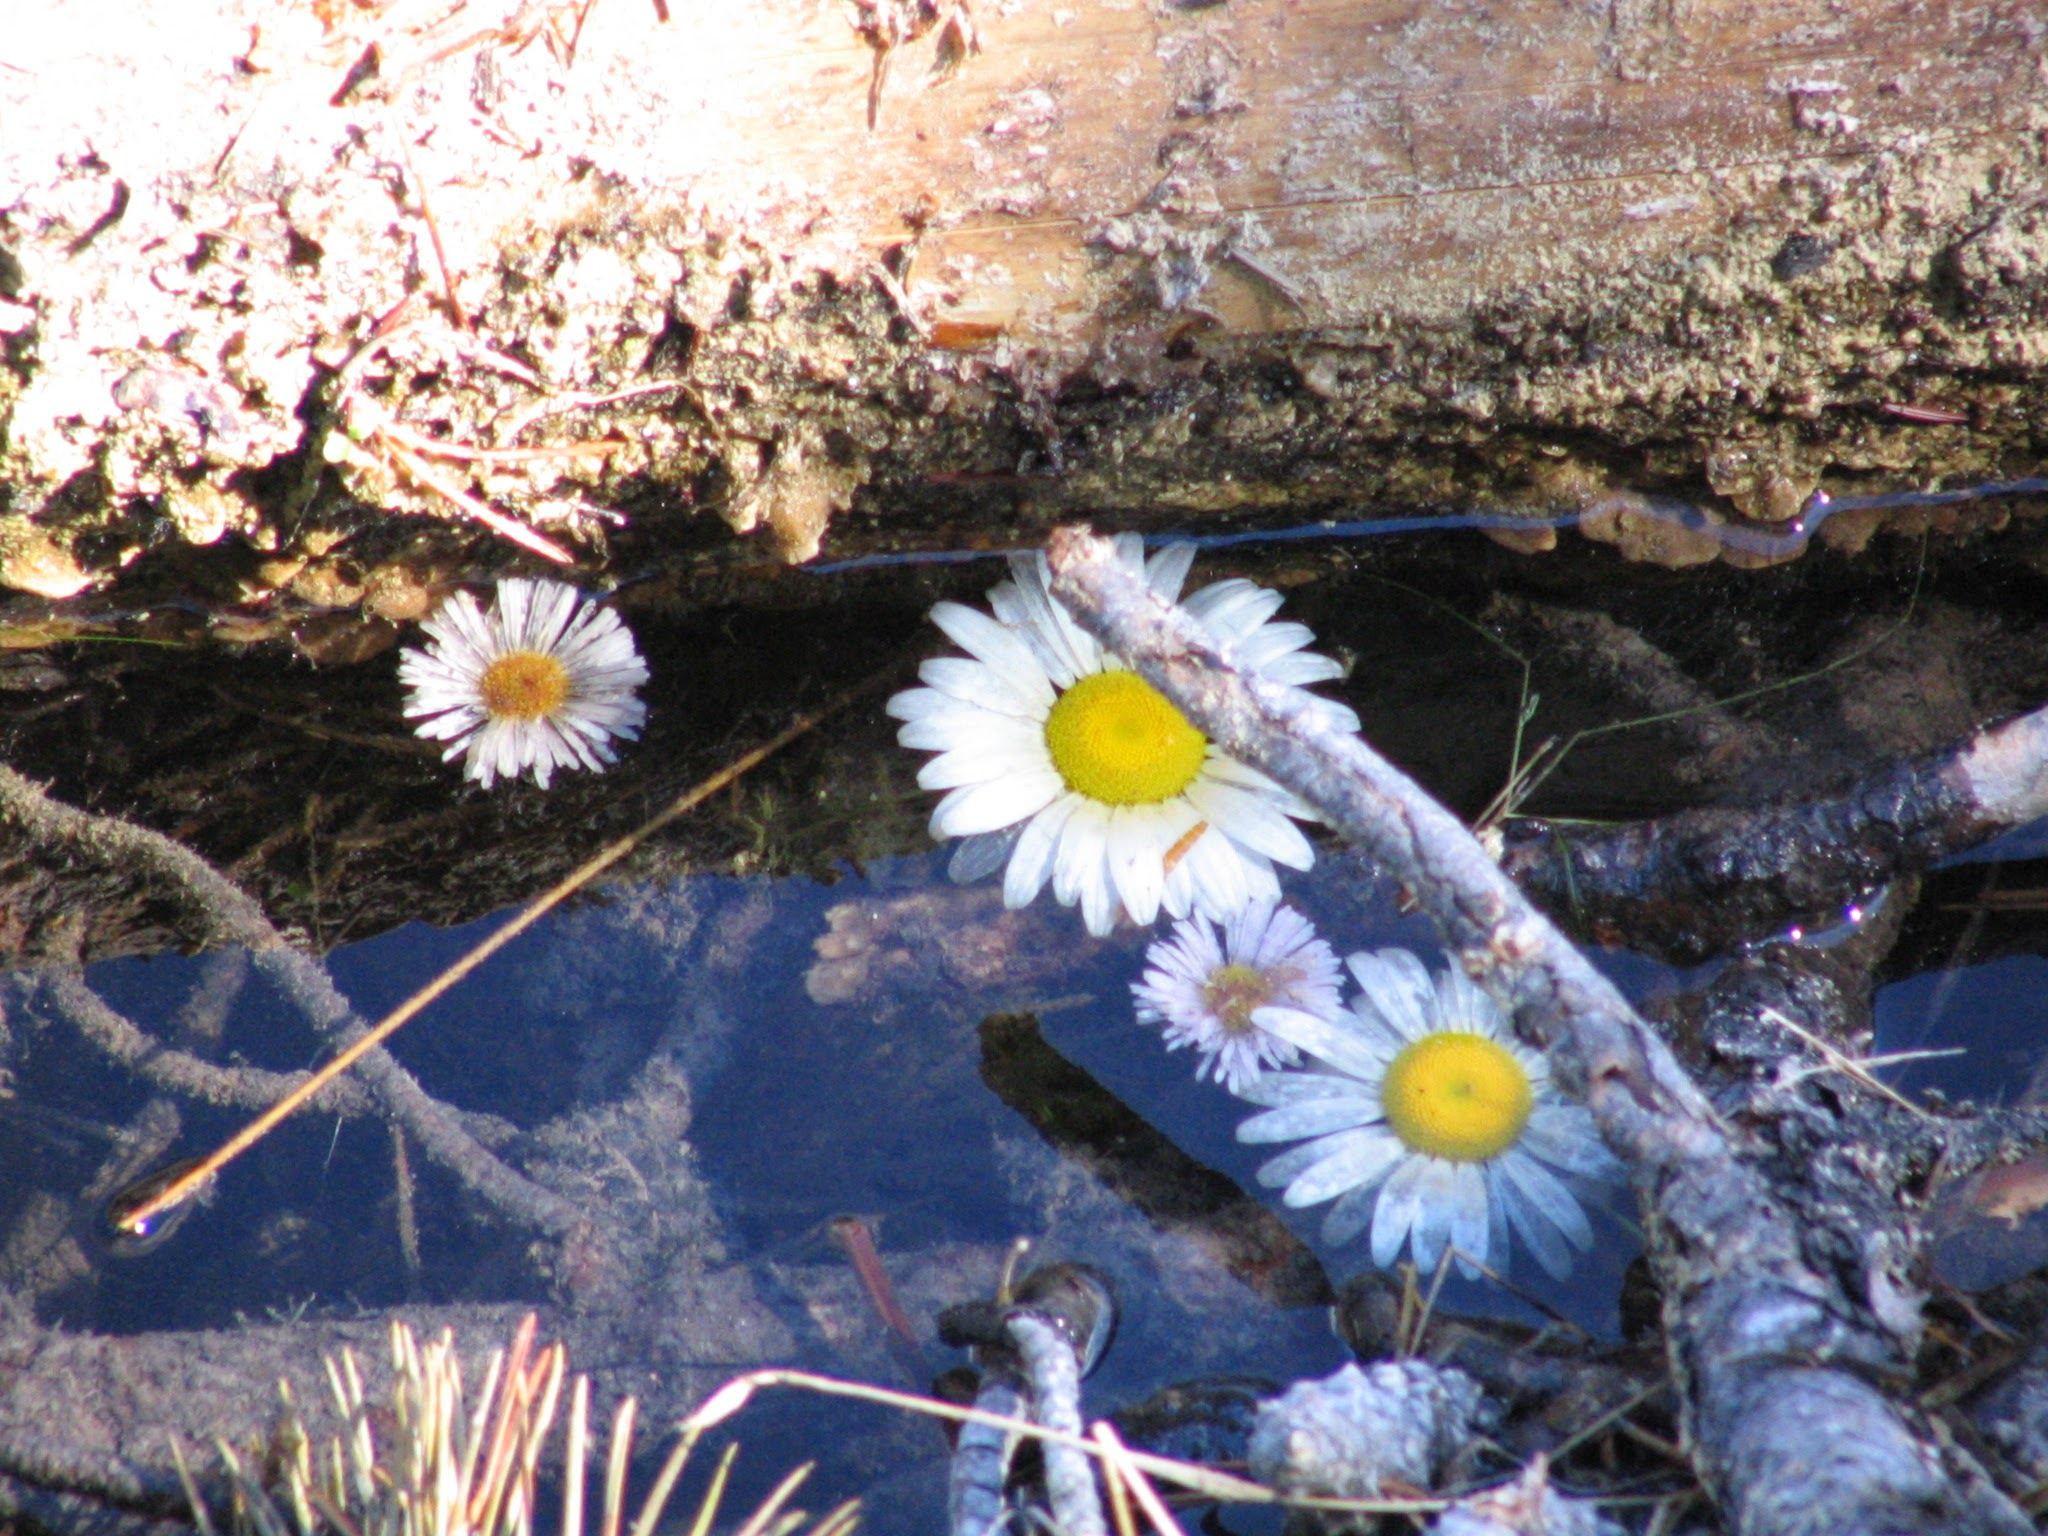 Daisies in a pool